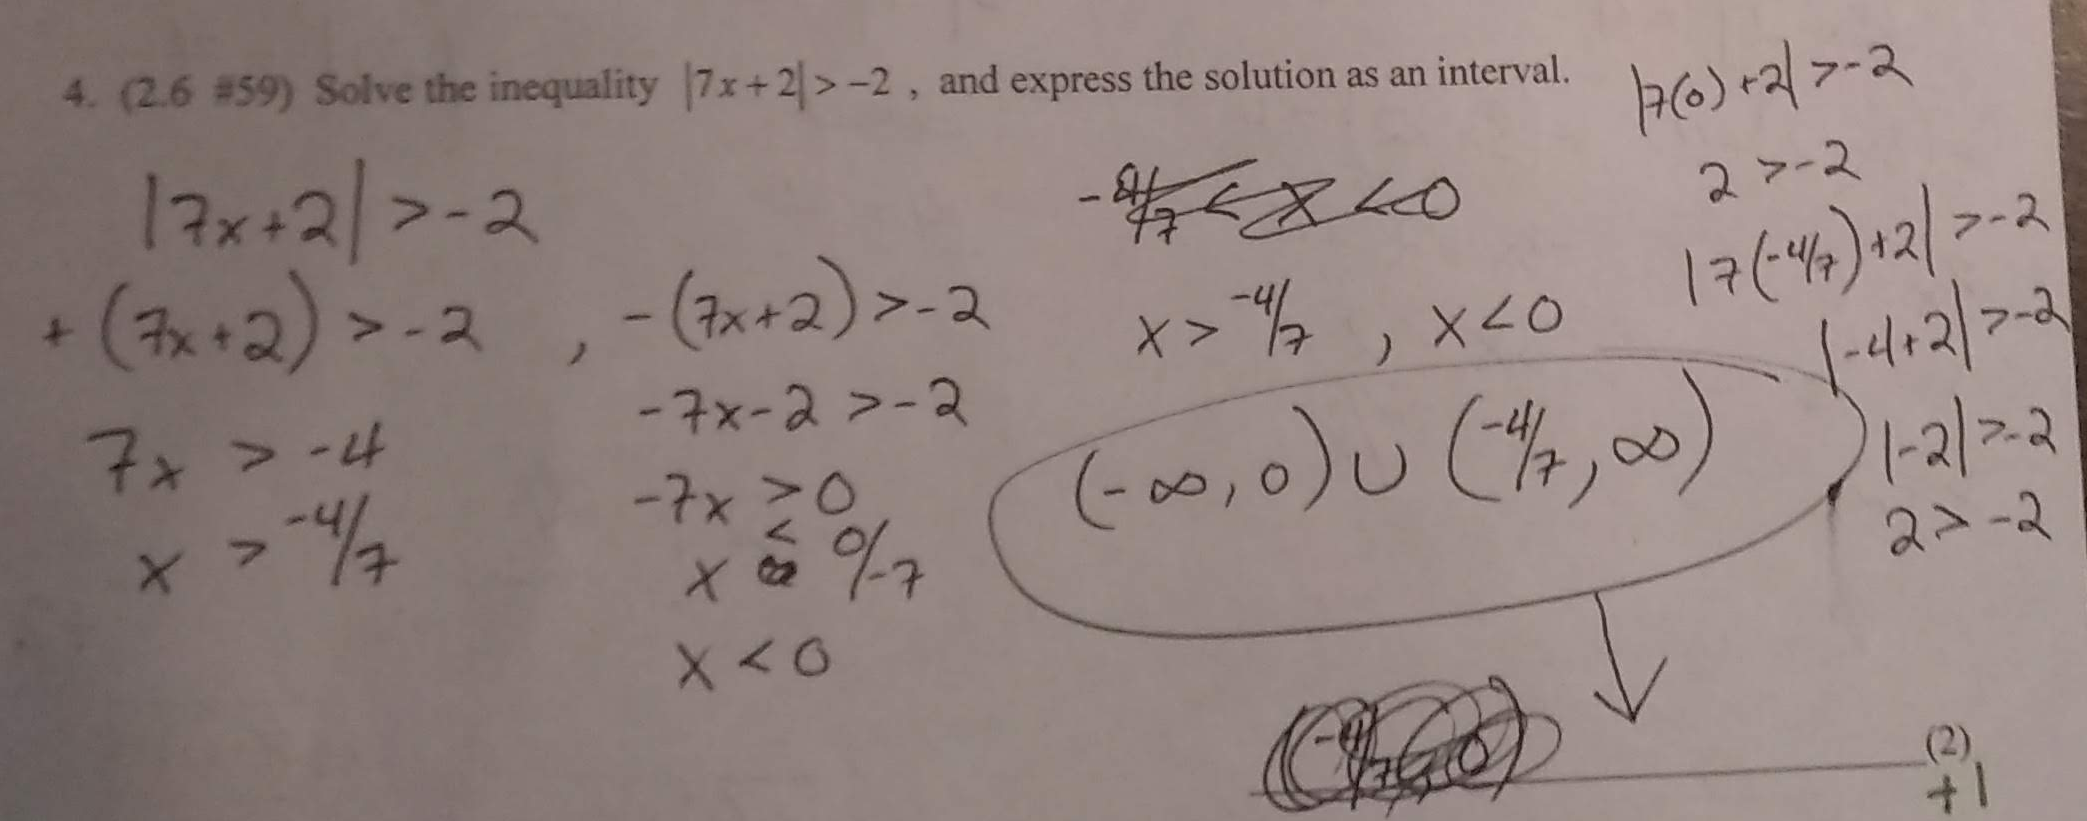 4. (2.6 #59) Solve the inequality 7x+2-2, and express the solution as an interval. 1x+23-2 (.2)2 2 -2 - tx+2)>-2 1a)-2 (<4e2>-2 1-217-2 X 7r>-i4 -7x-2 >-3 -7x>O C0,0)U al2 7 2-2 Chbat'o (2) + 1